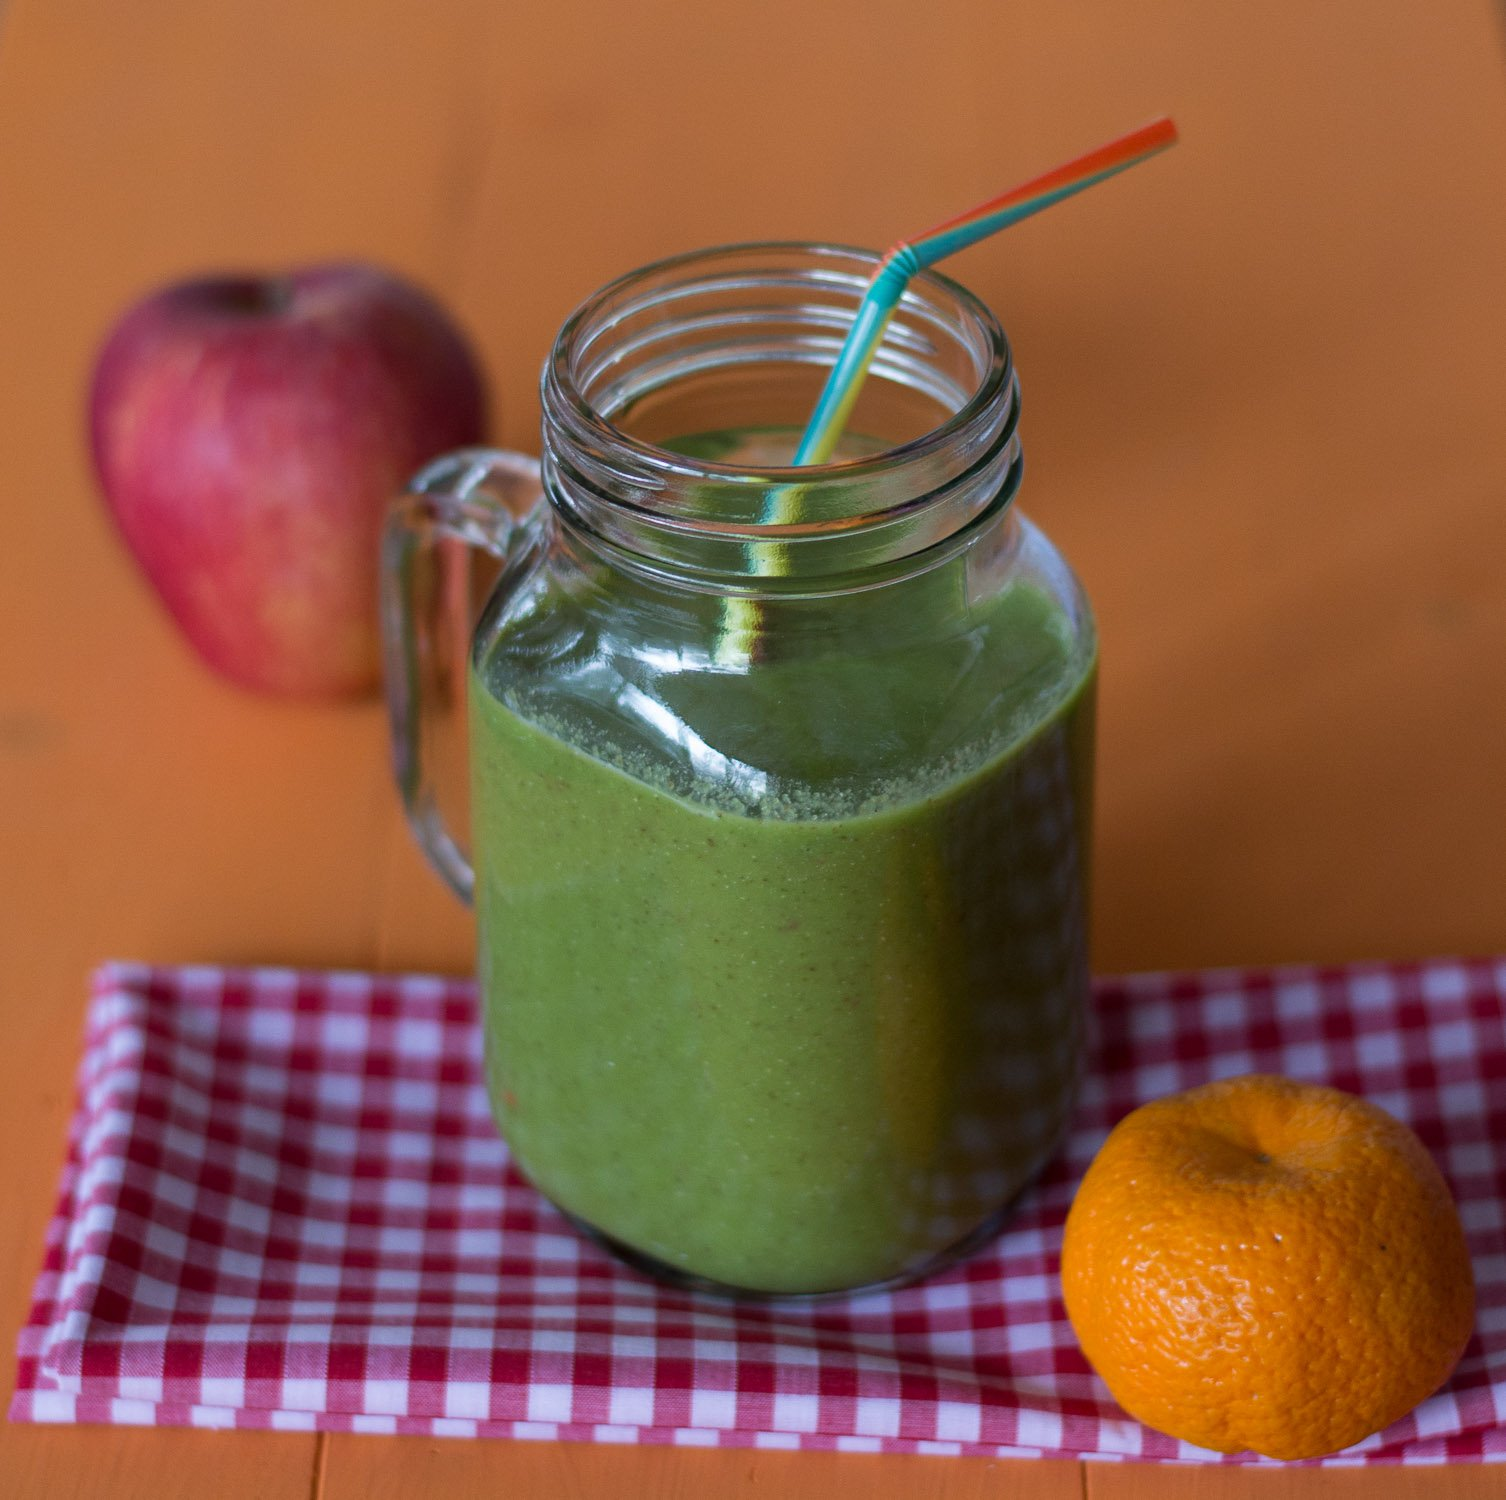 Spinach, clementine, apple, chia seeds, coconut water Nutriblast